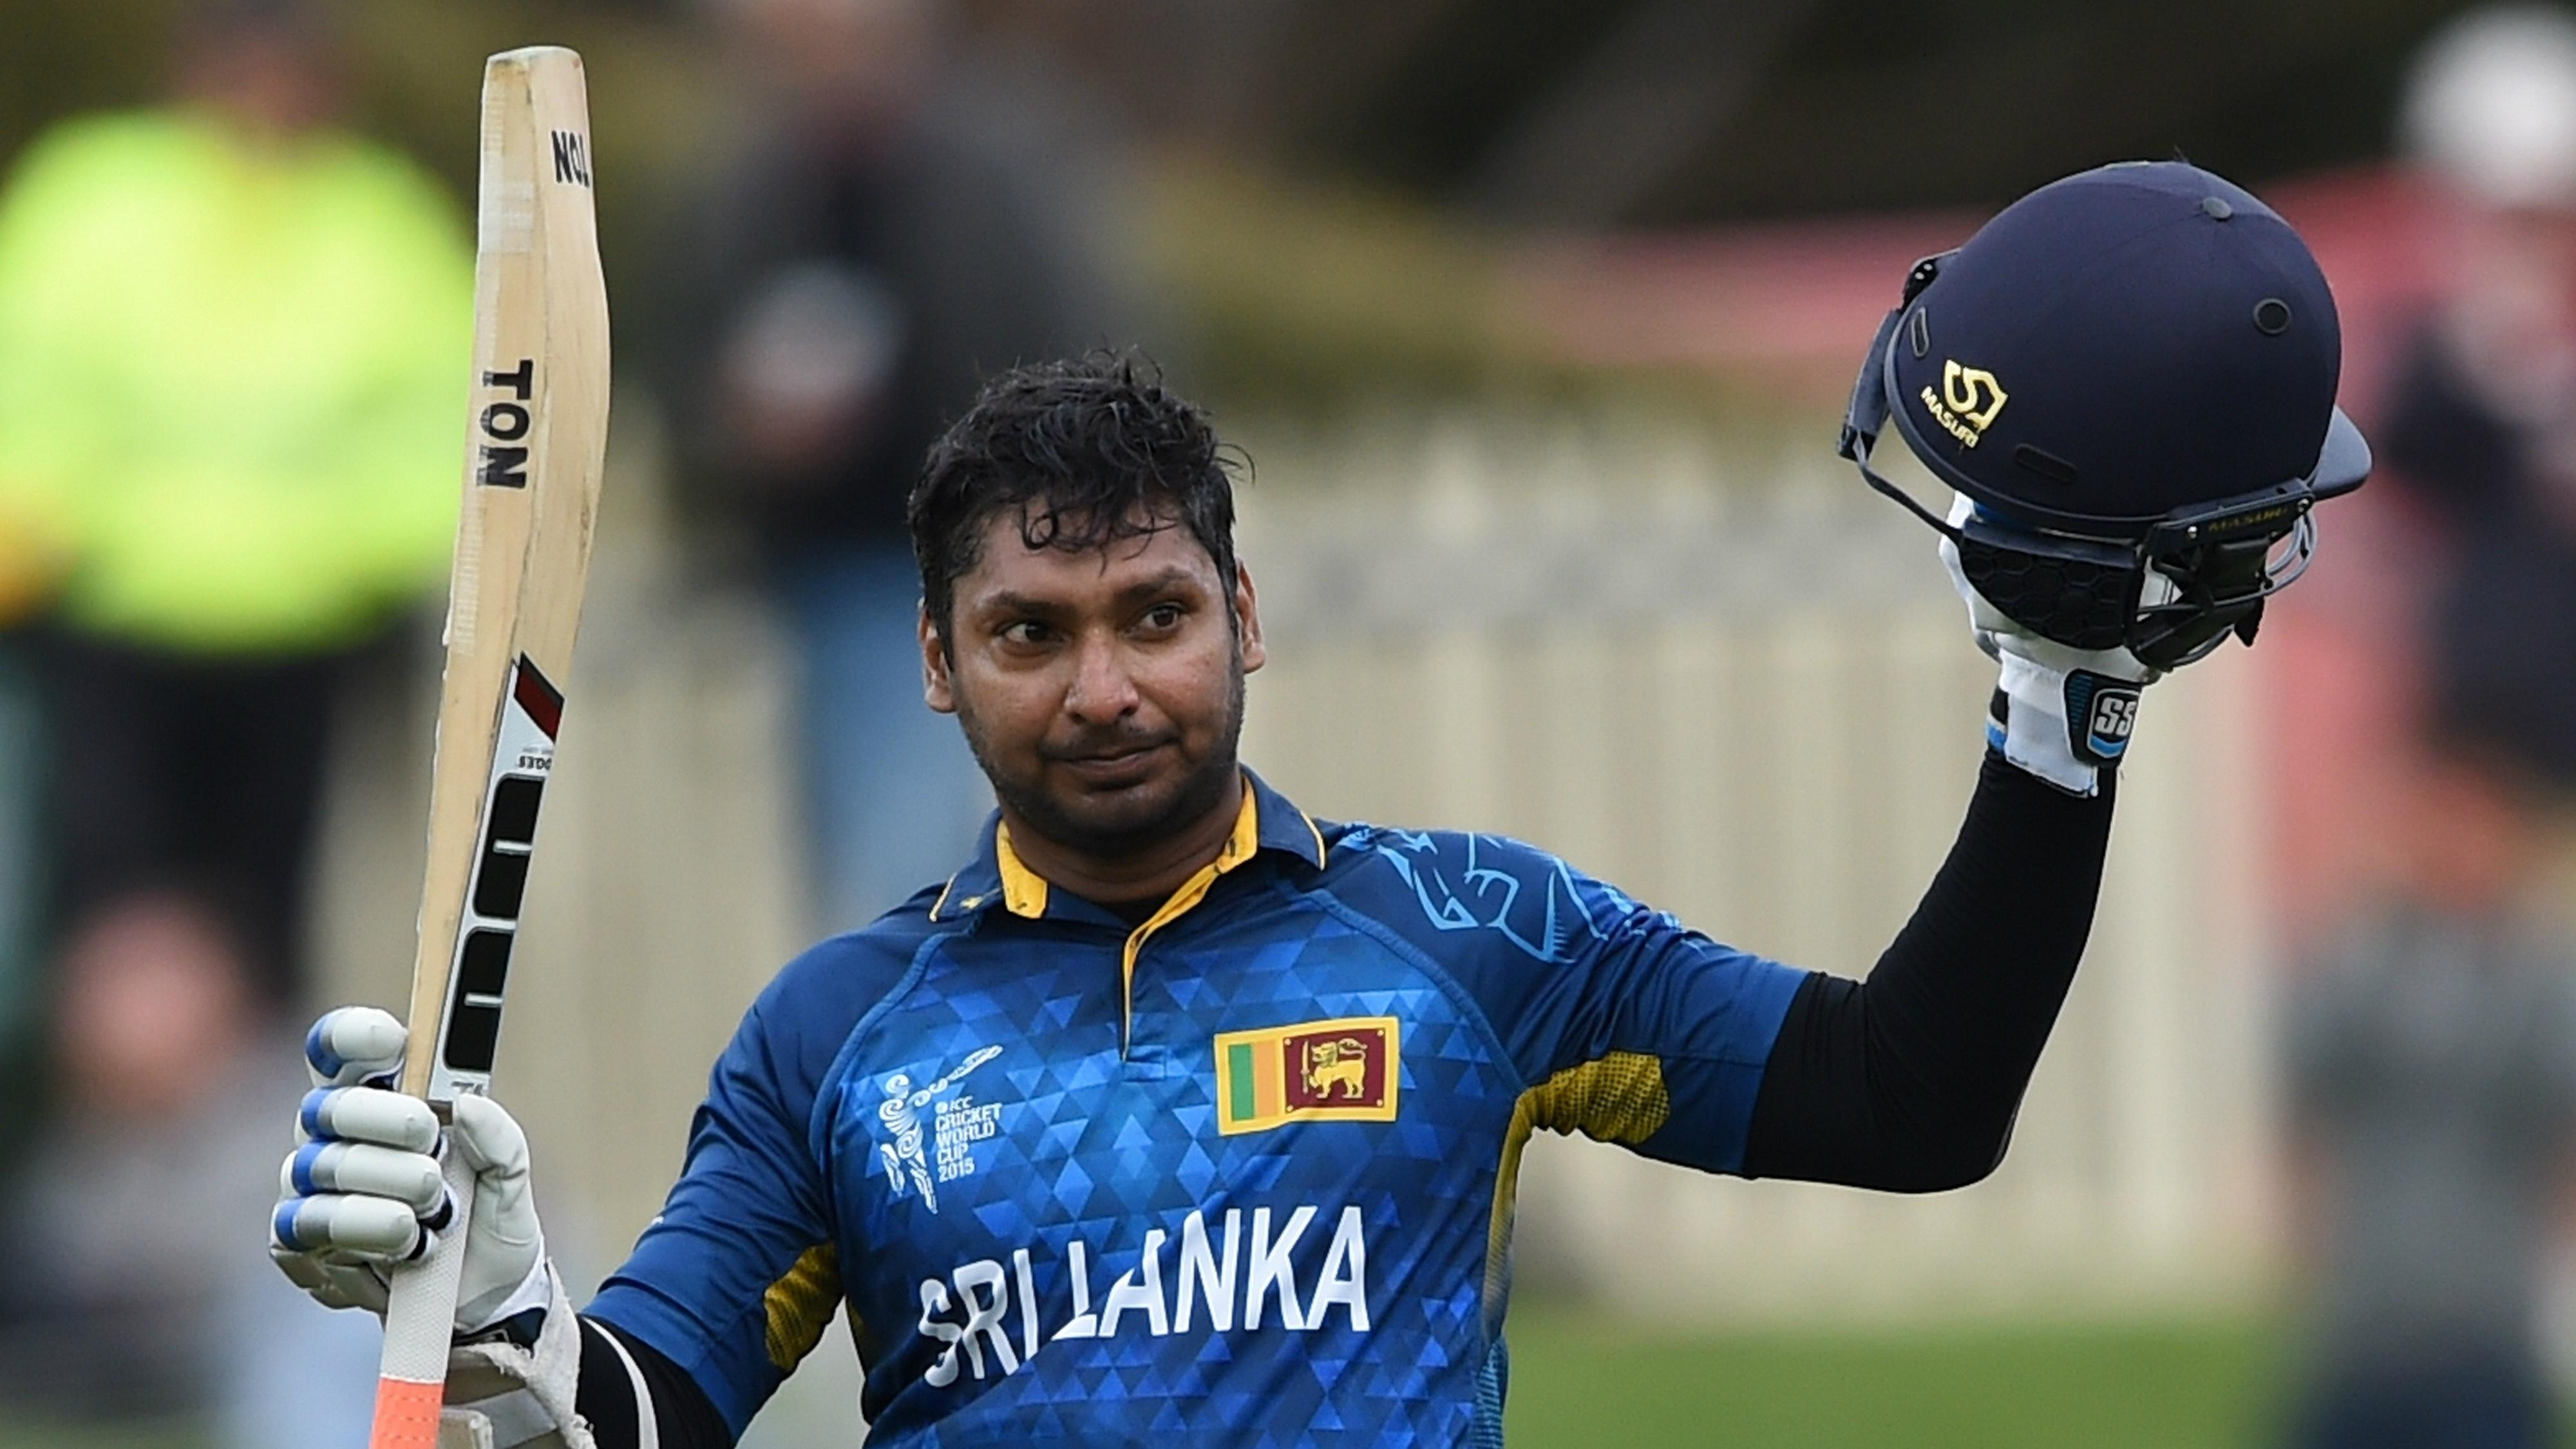 Sangakkara's World Cup record: in his own words